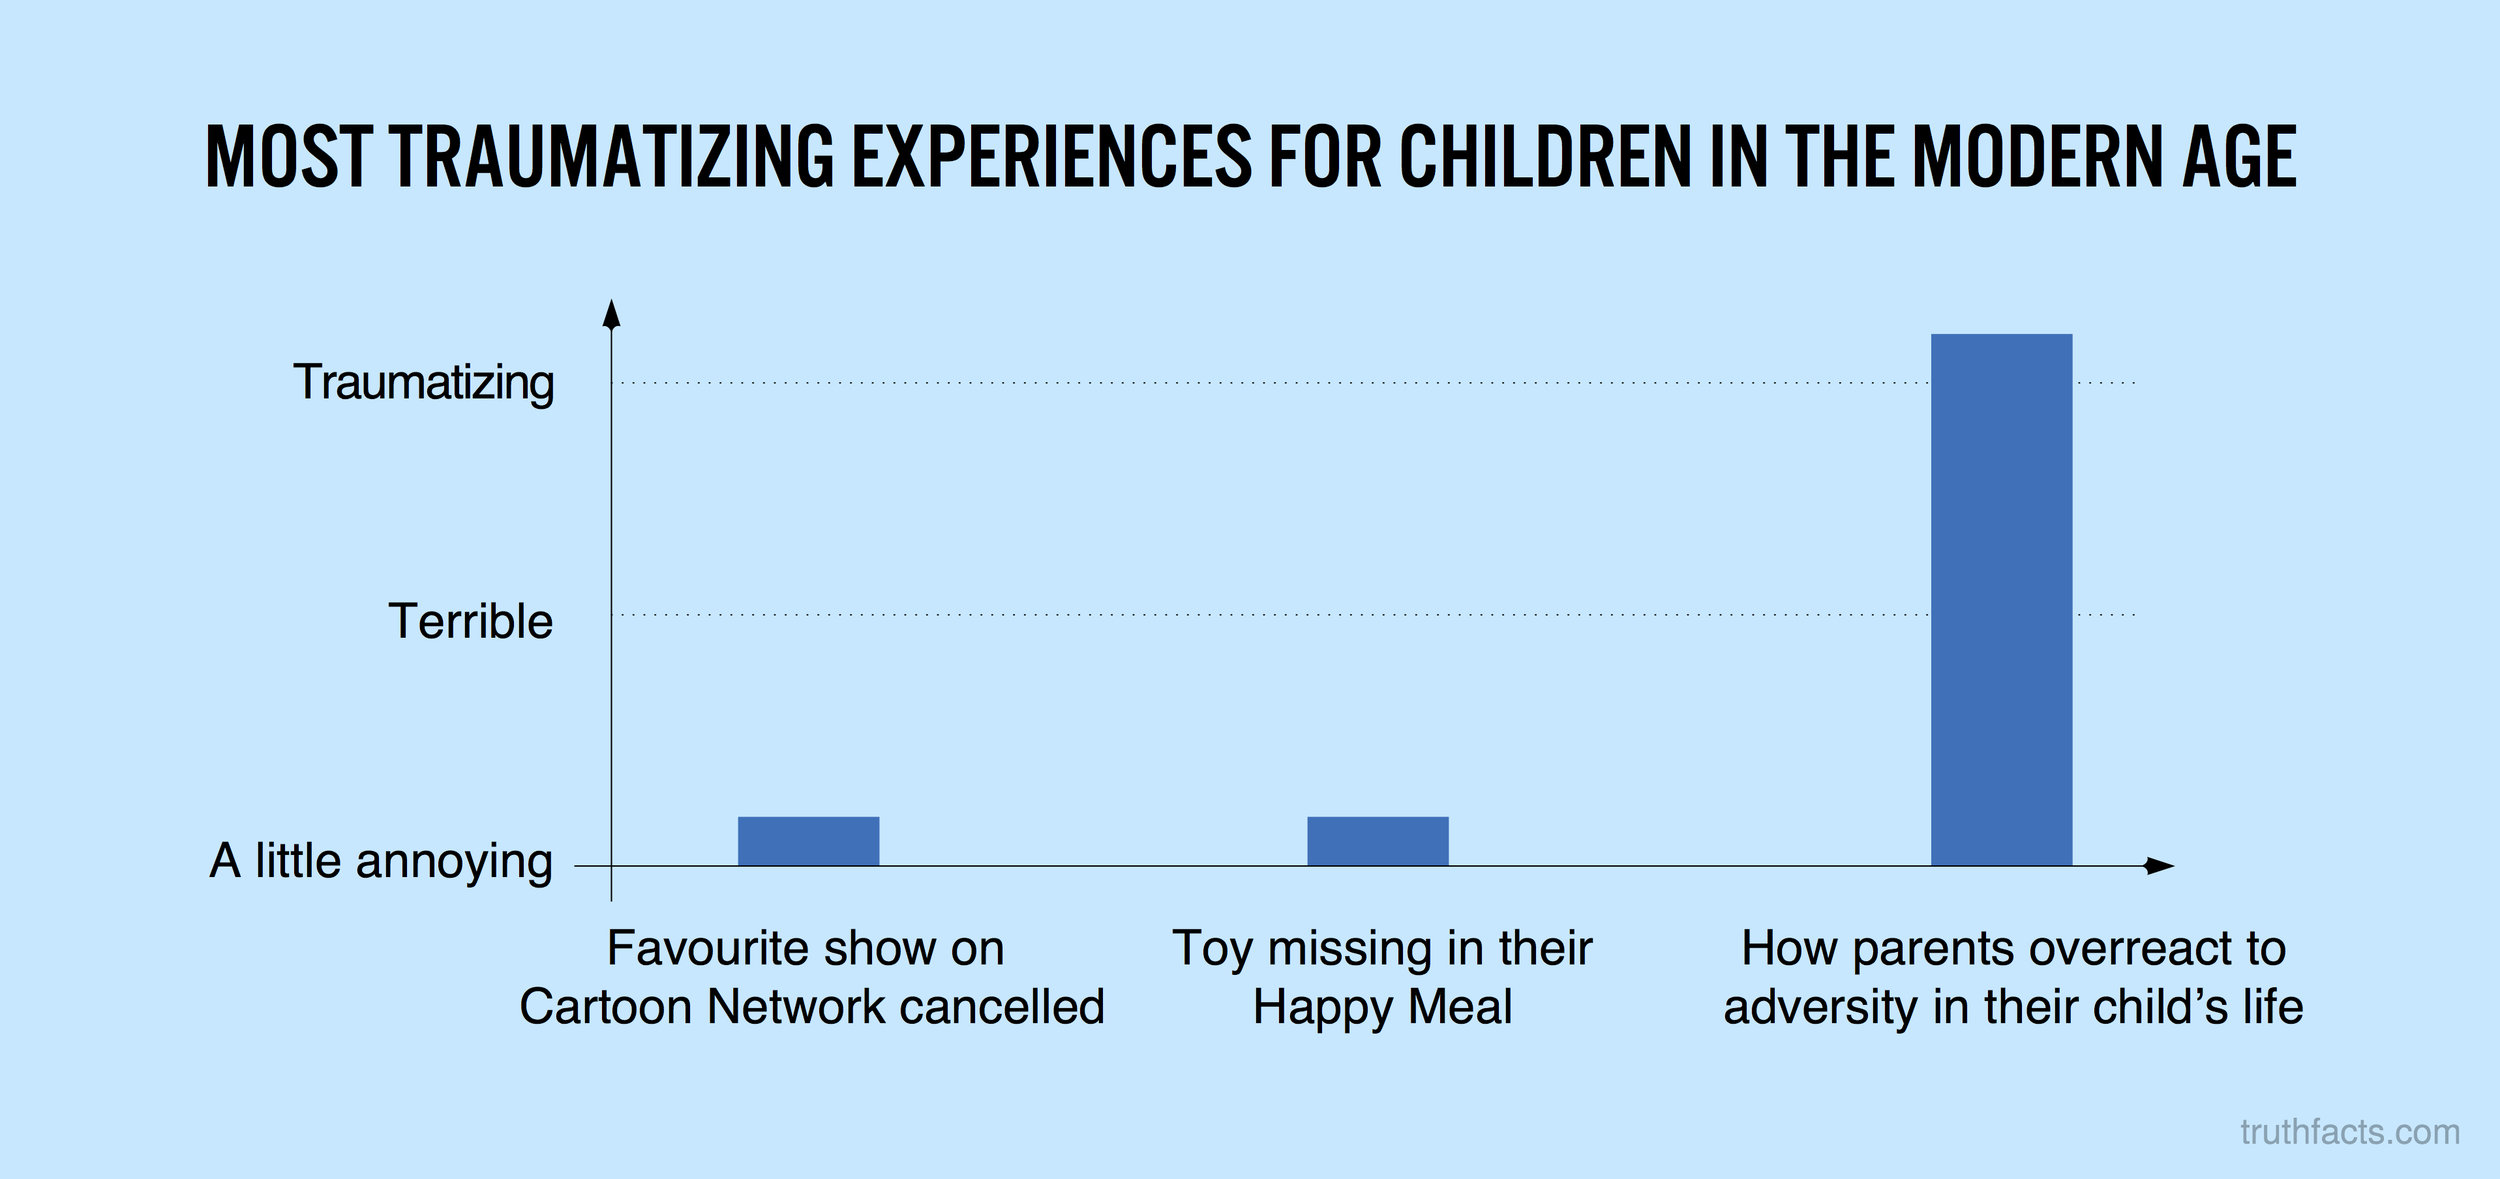 Most traumatising experiences for children in the modern age